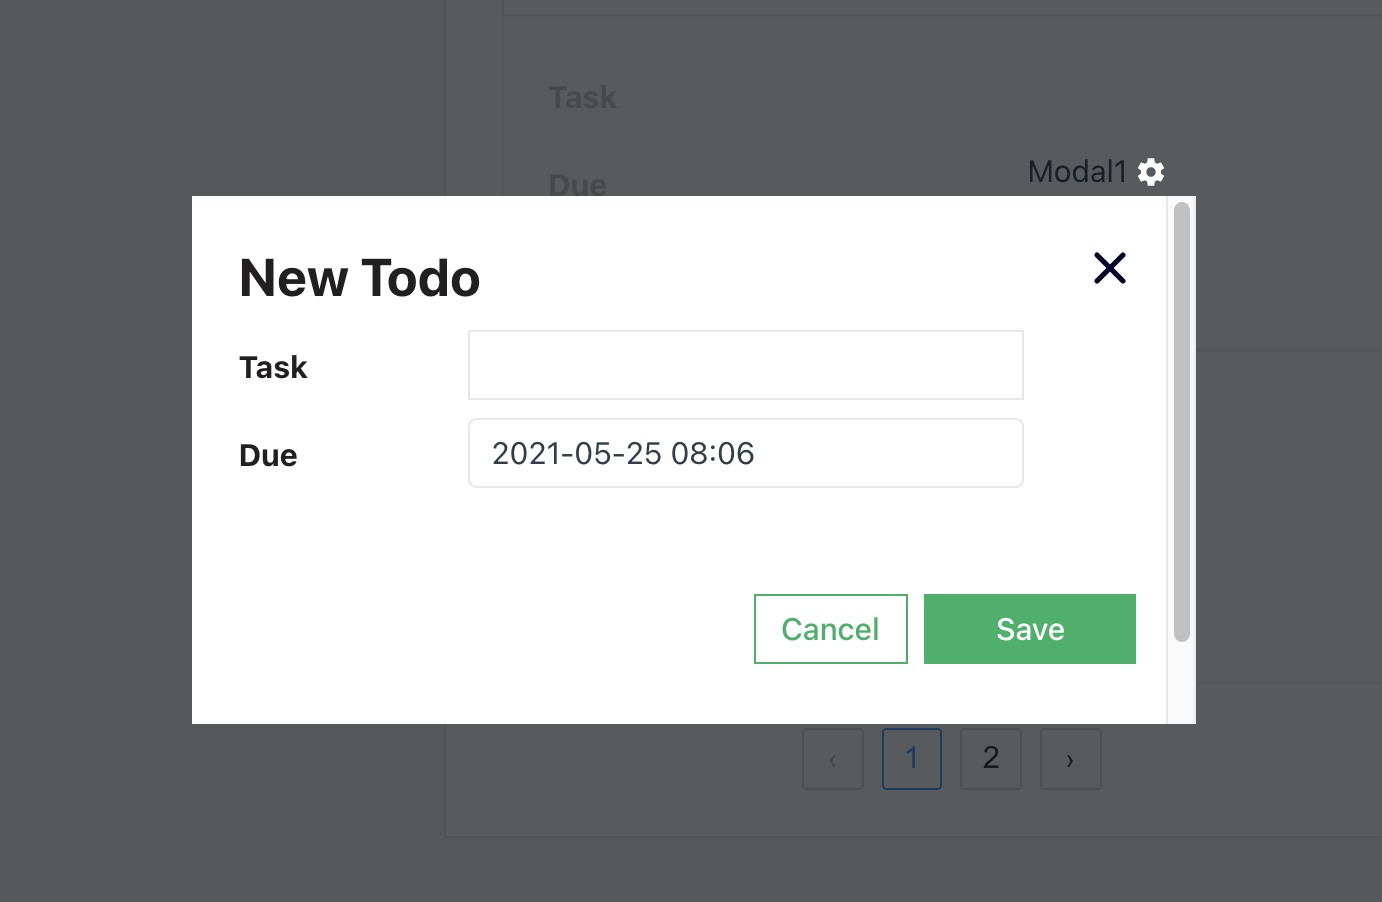 image show my form modal configuration